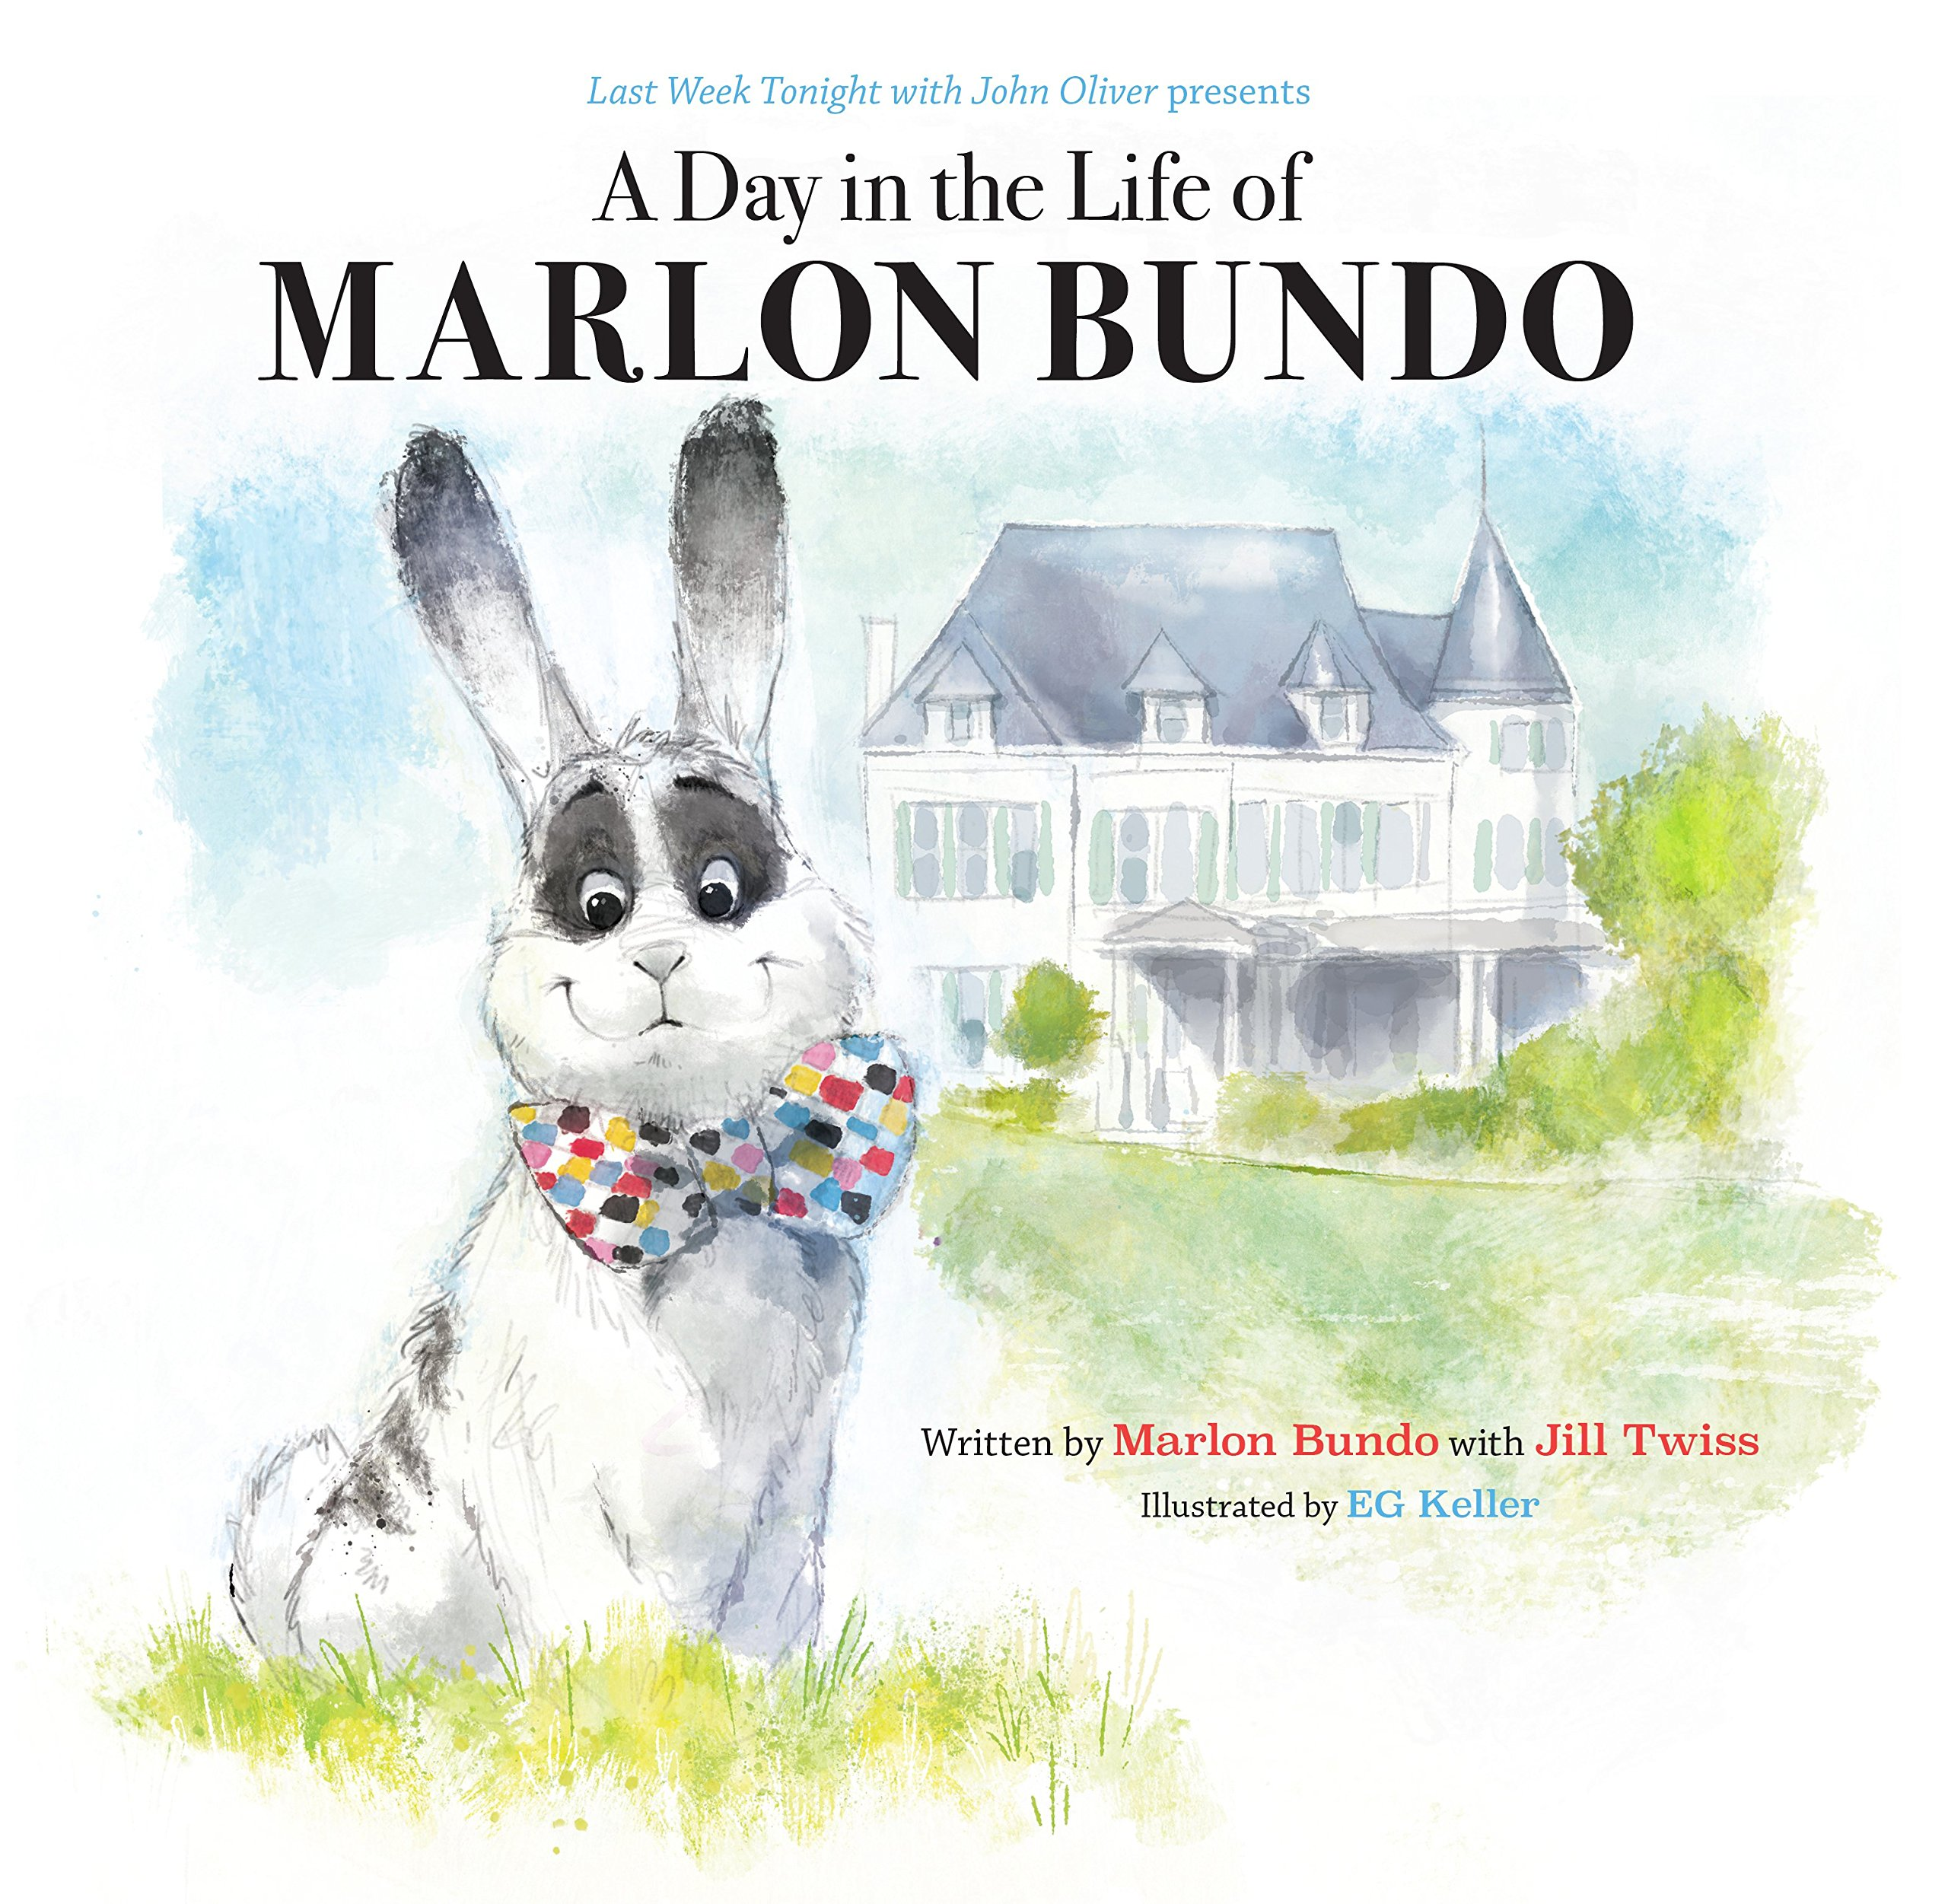 Marlon Bundo by Marlon Bundo with Jill Twiss